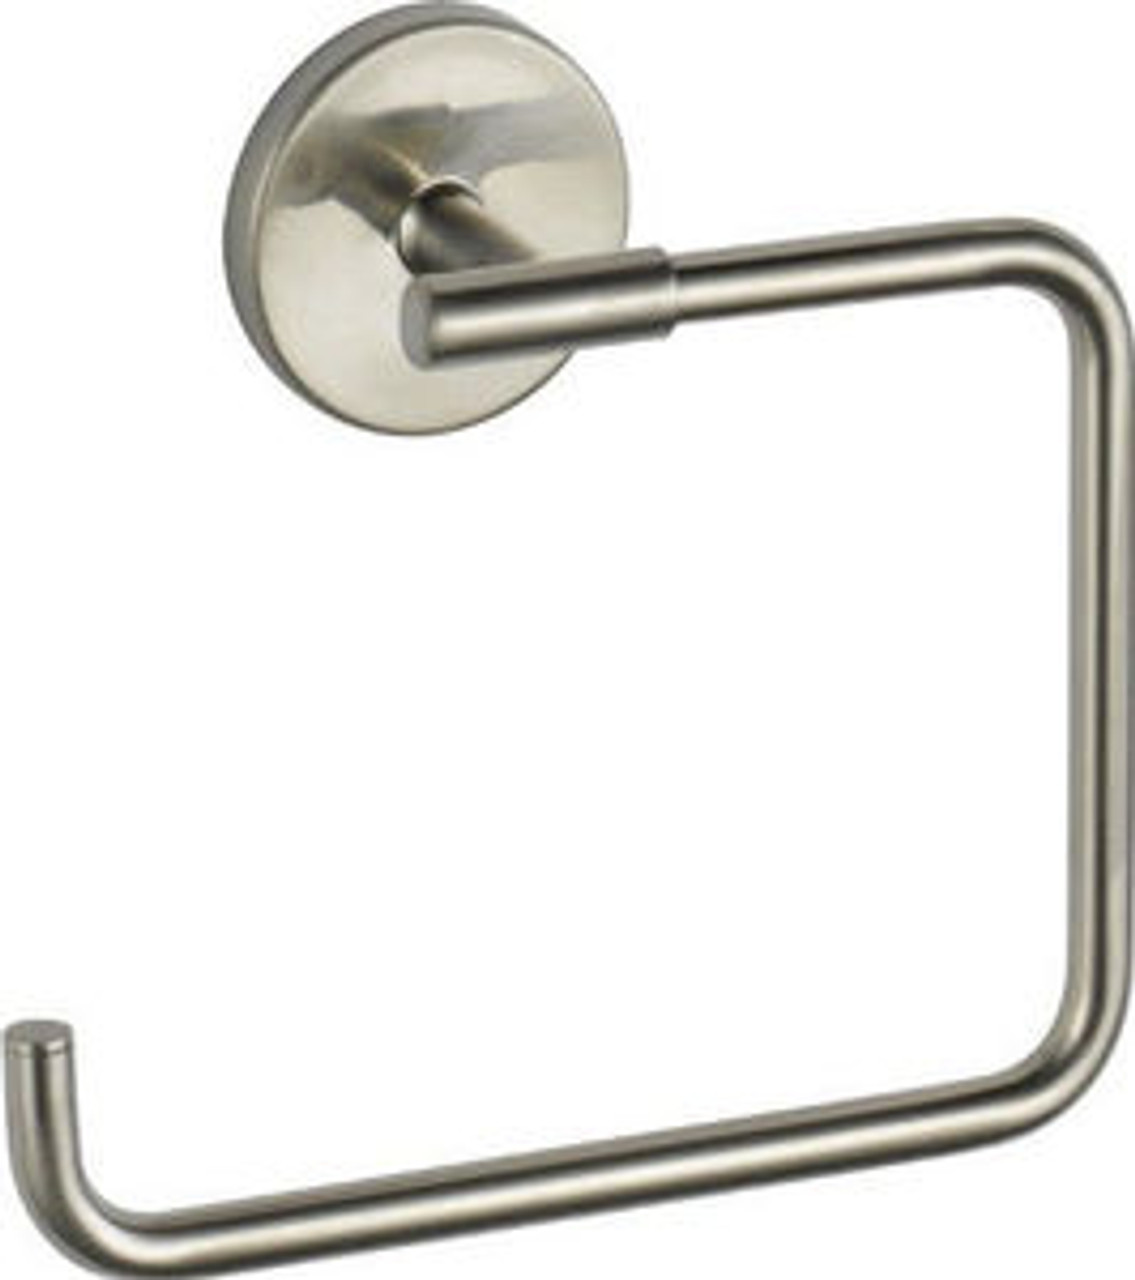 75960-SS Trinsic Bath Towel Ring Stainless Finish